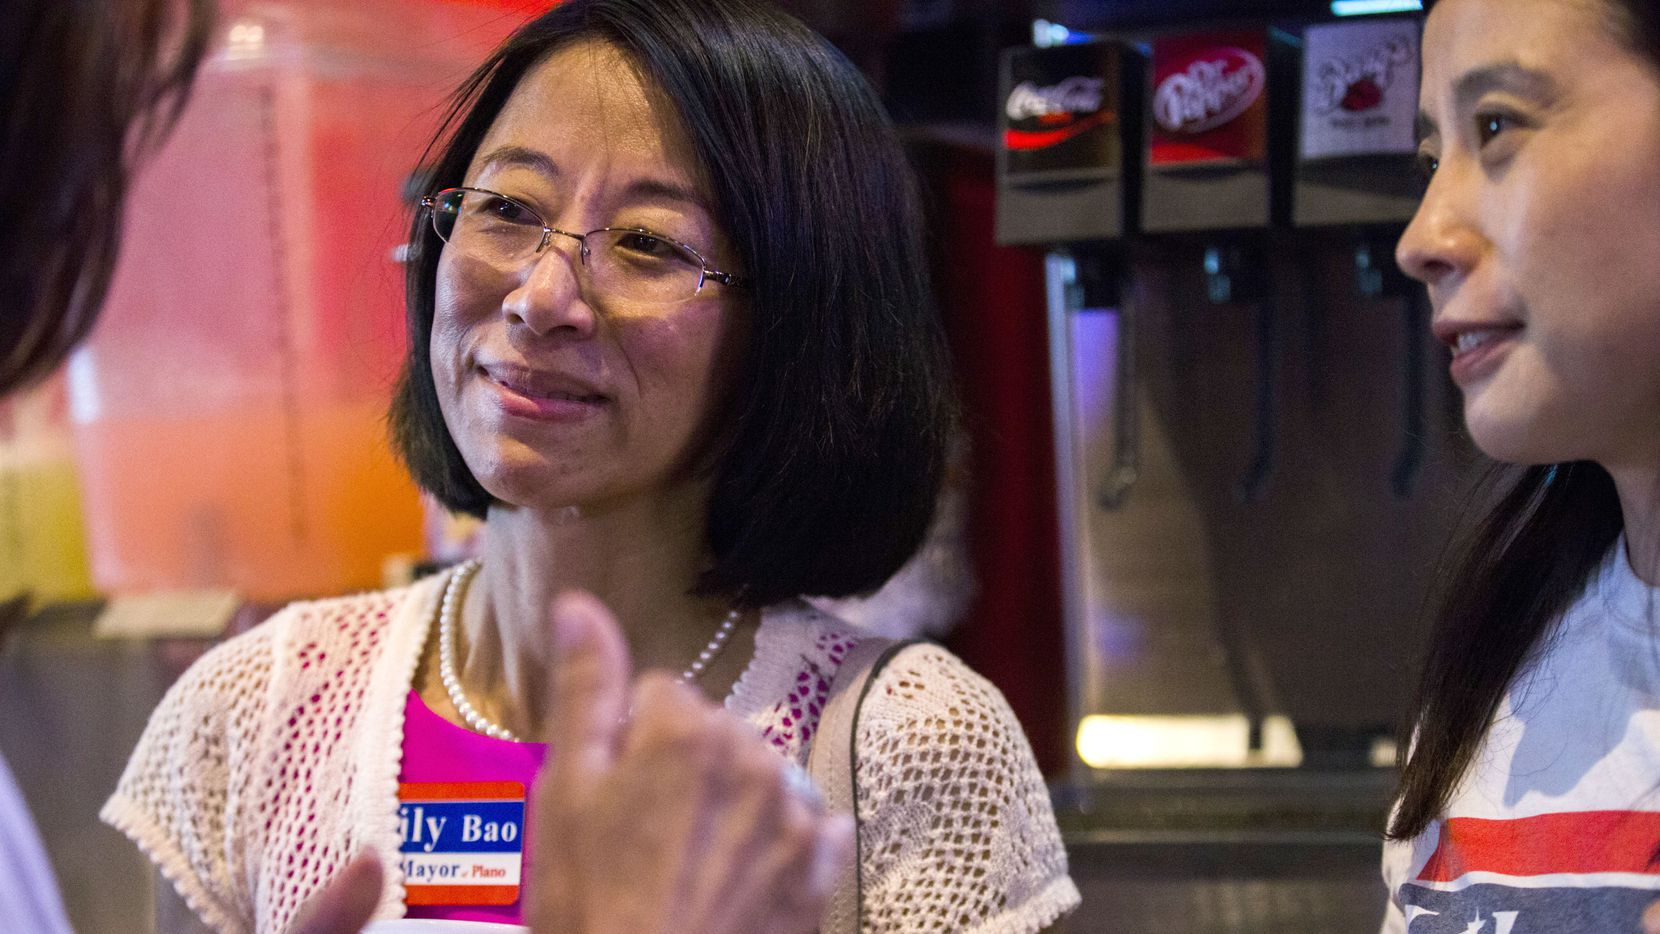 Lily Bao is shown in a 2017 file photo. The city council member announced this week that she is running for mayor.